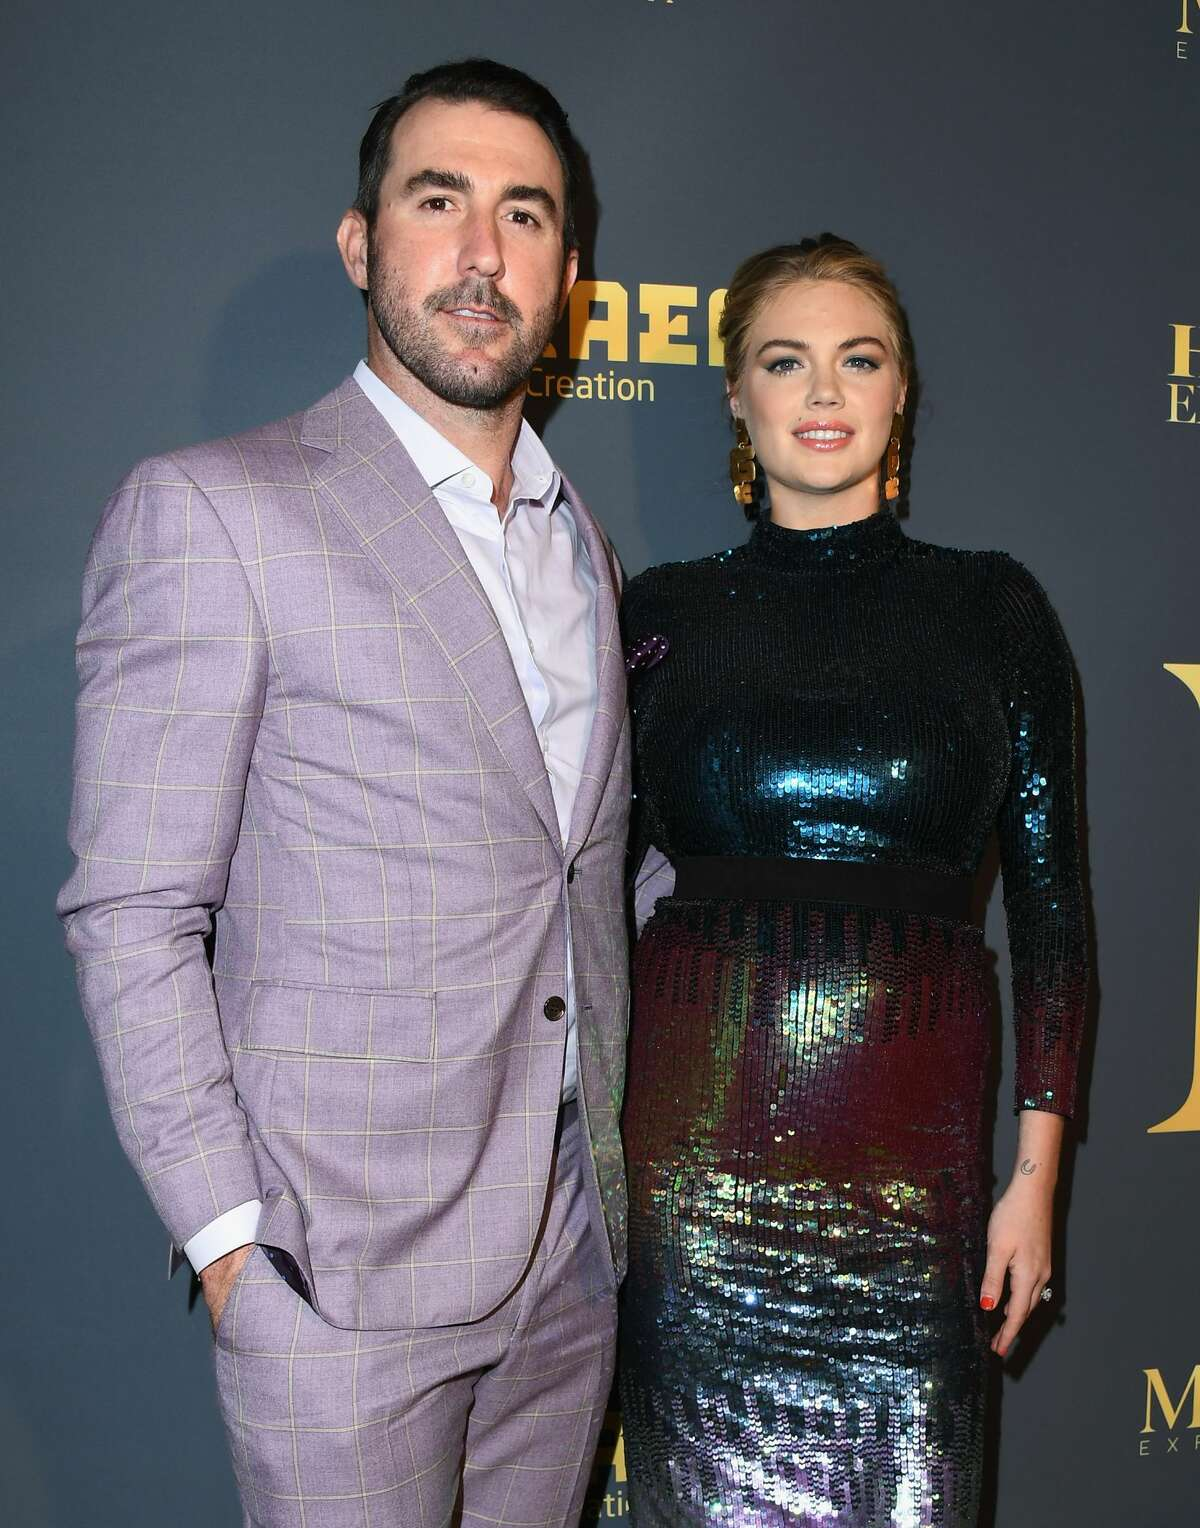 Host Kate Upton and her husband Justin Verlander attend The Maxim Hot 100 Experience at Hollywood Palladium on July 21, 2018 in Los Angeles, California.